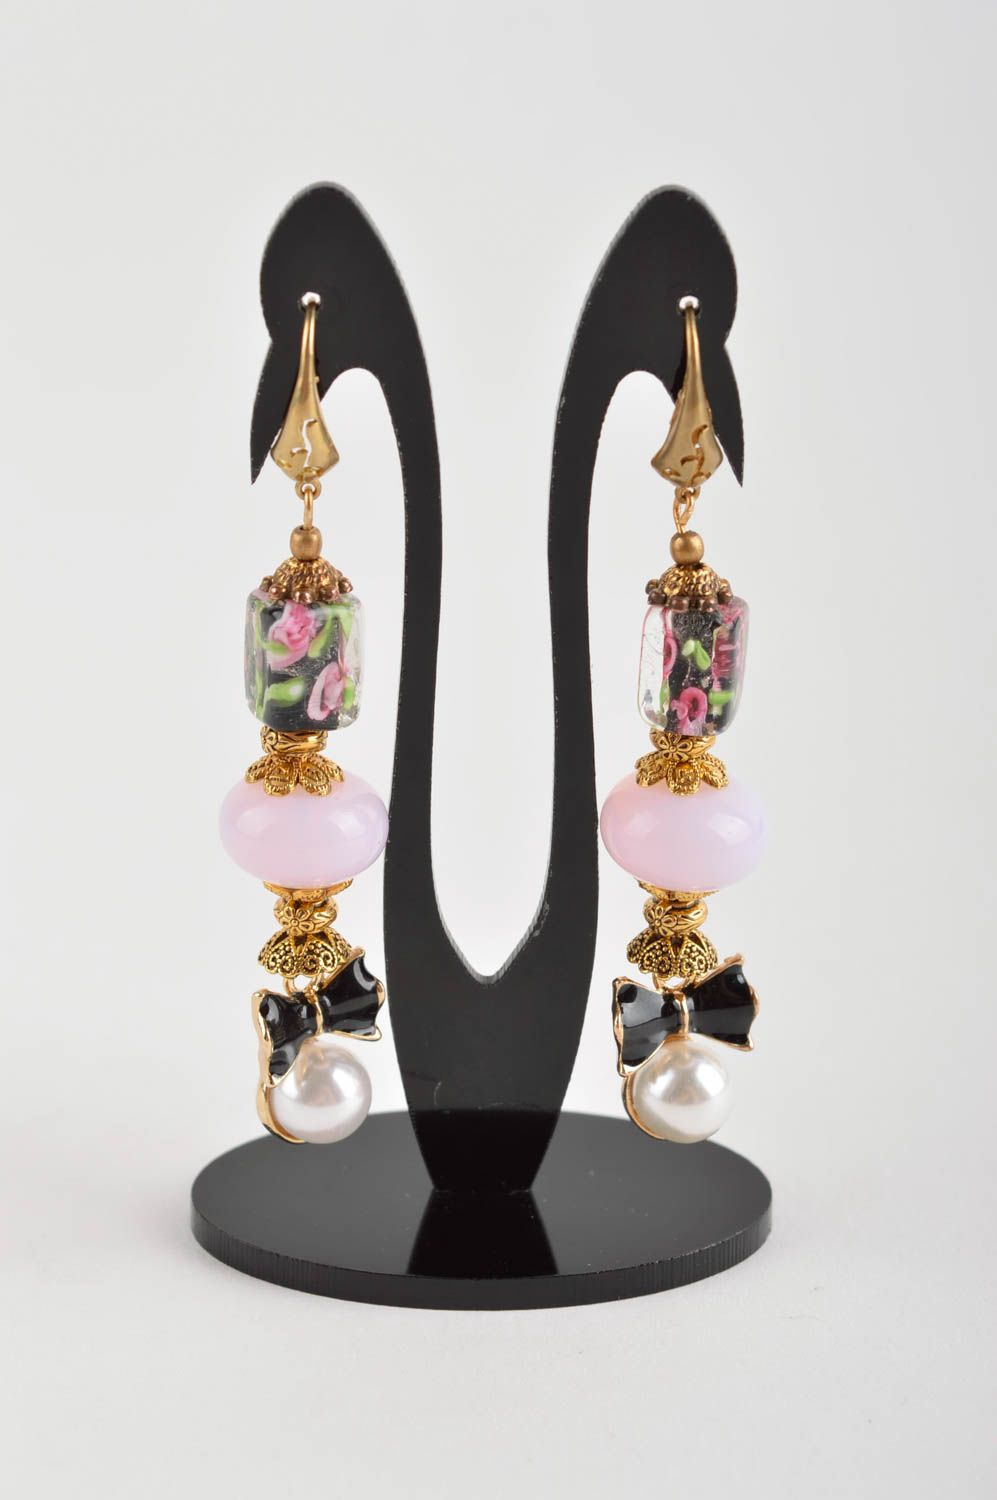 chandelier earrings Homemade jewelry dangling earrings designer earrings fashion accessories - MADEheart.com